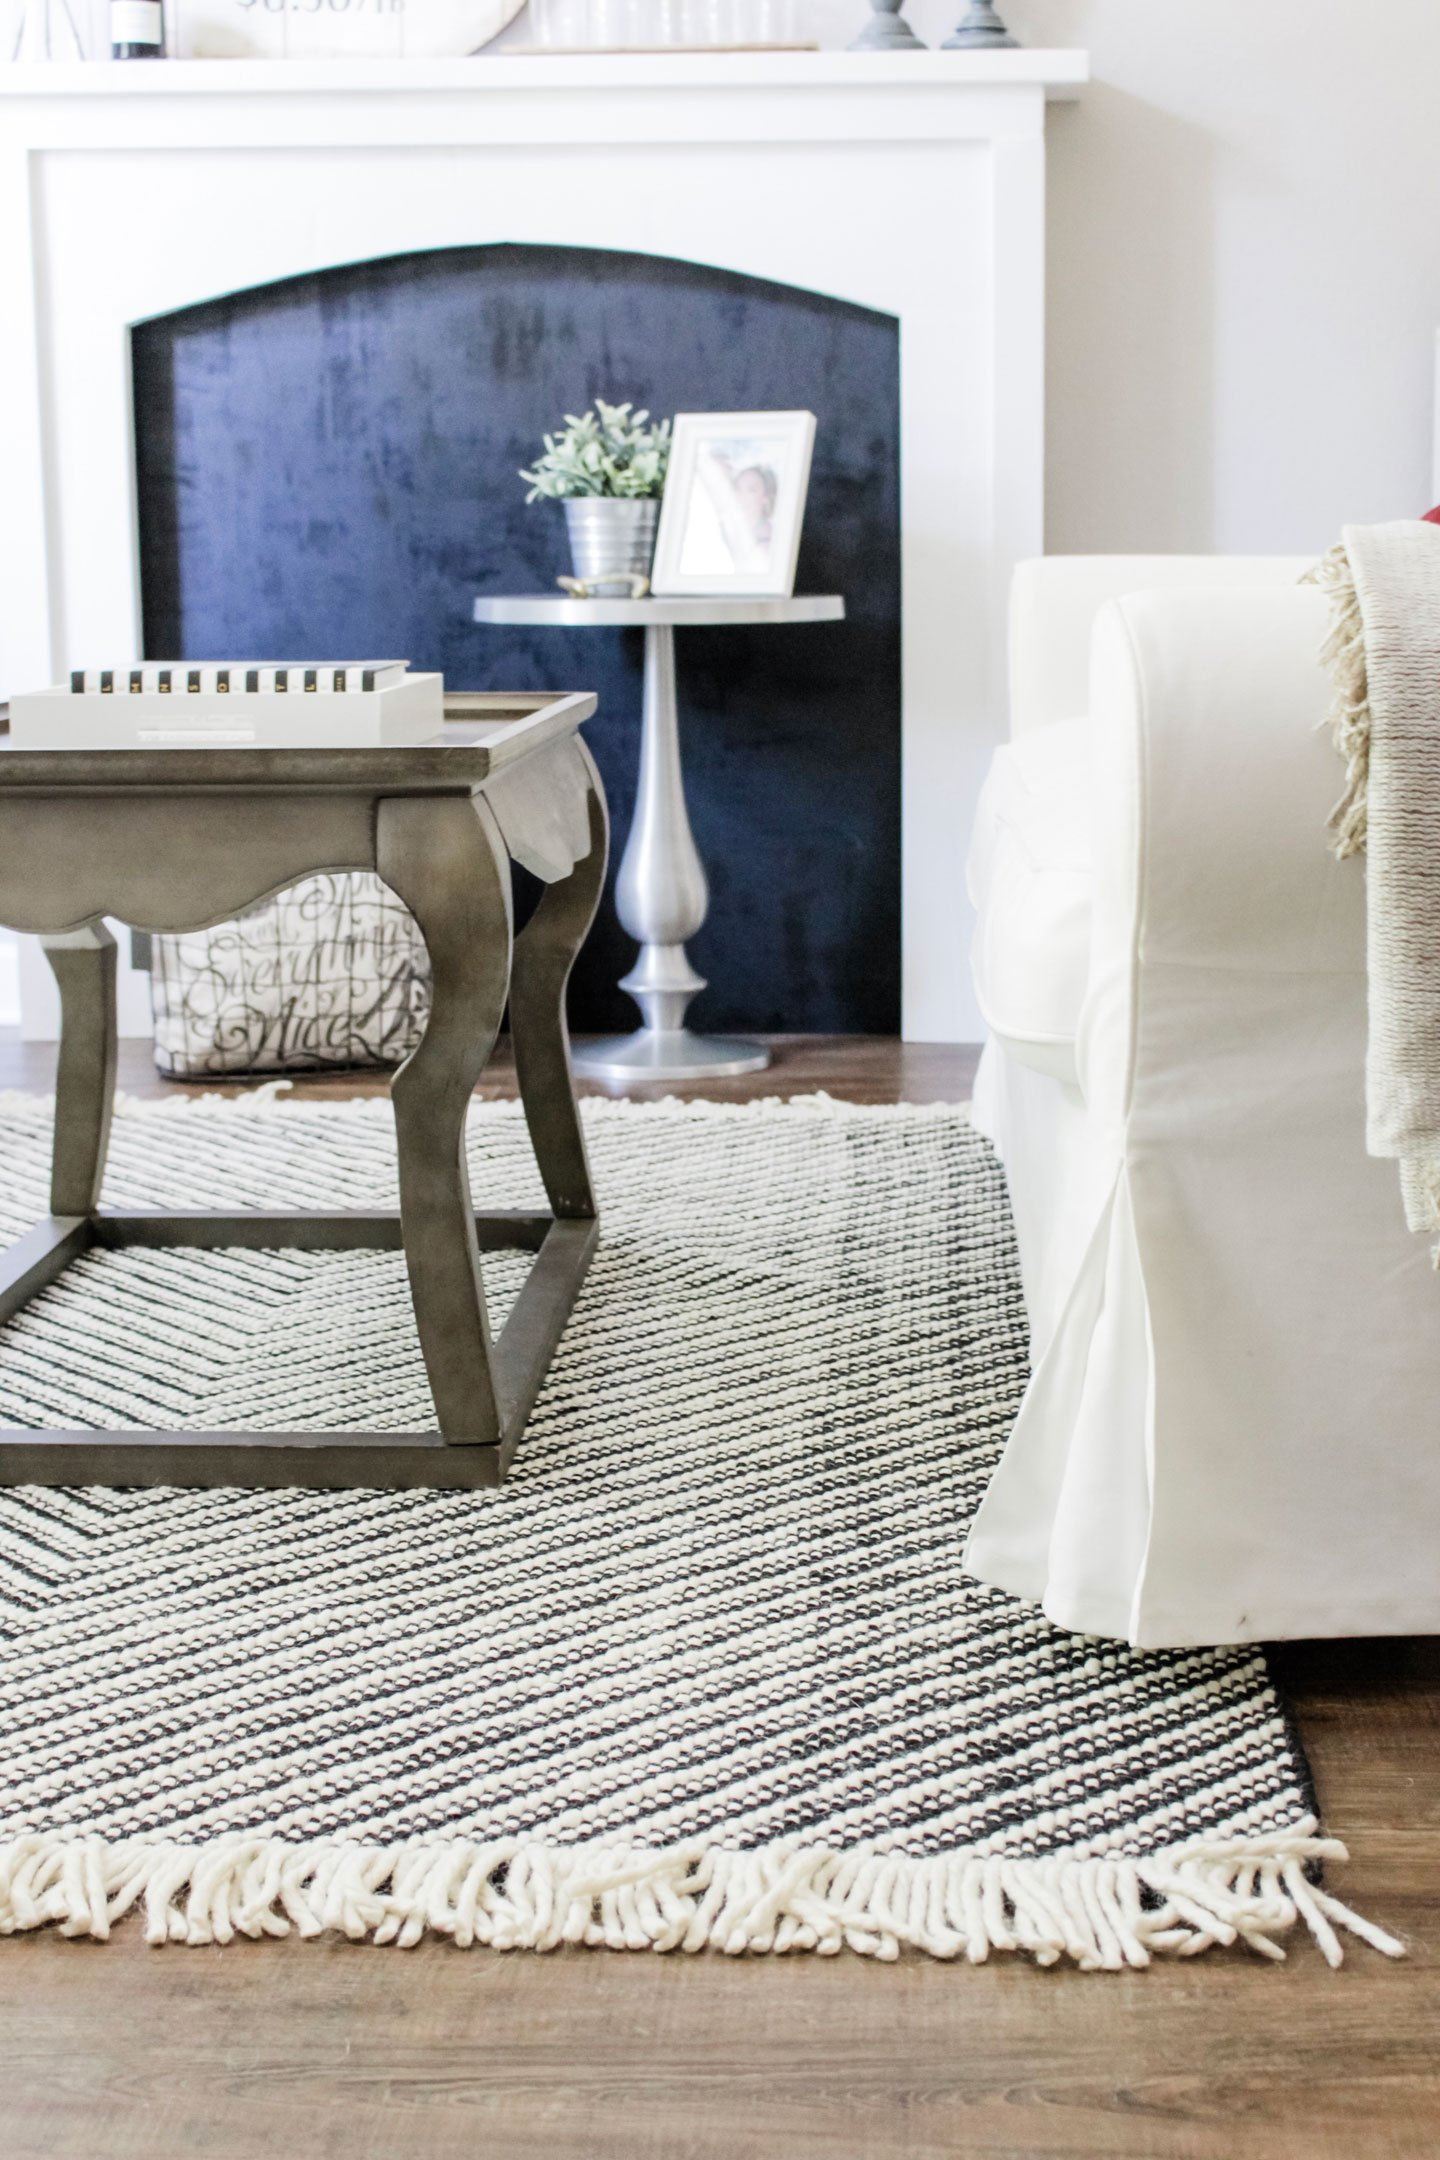 A Small Decor Change That Made a Big Impact_Target Project 62 rug